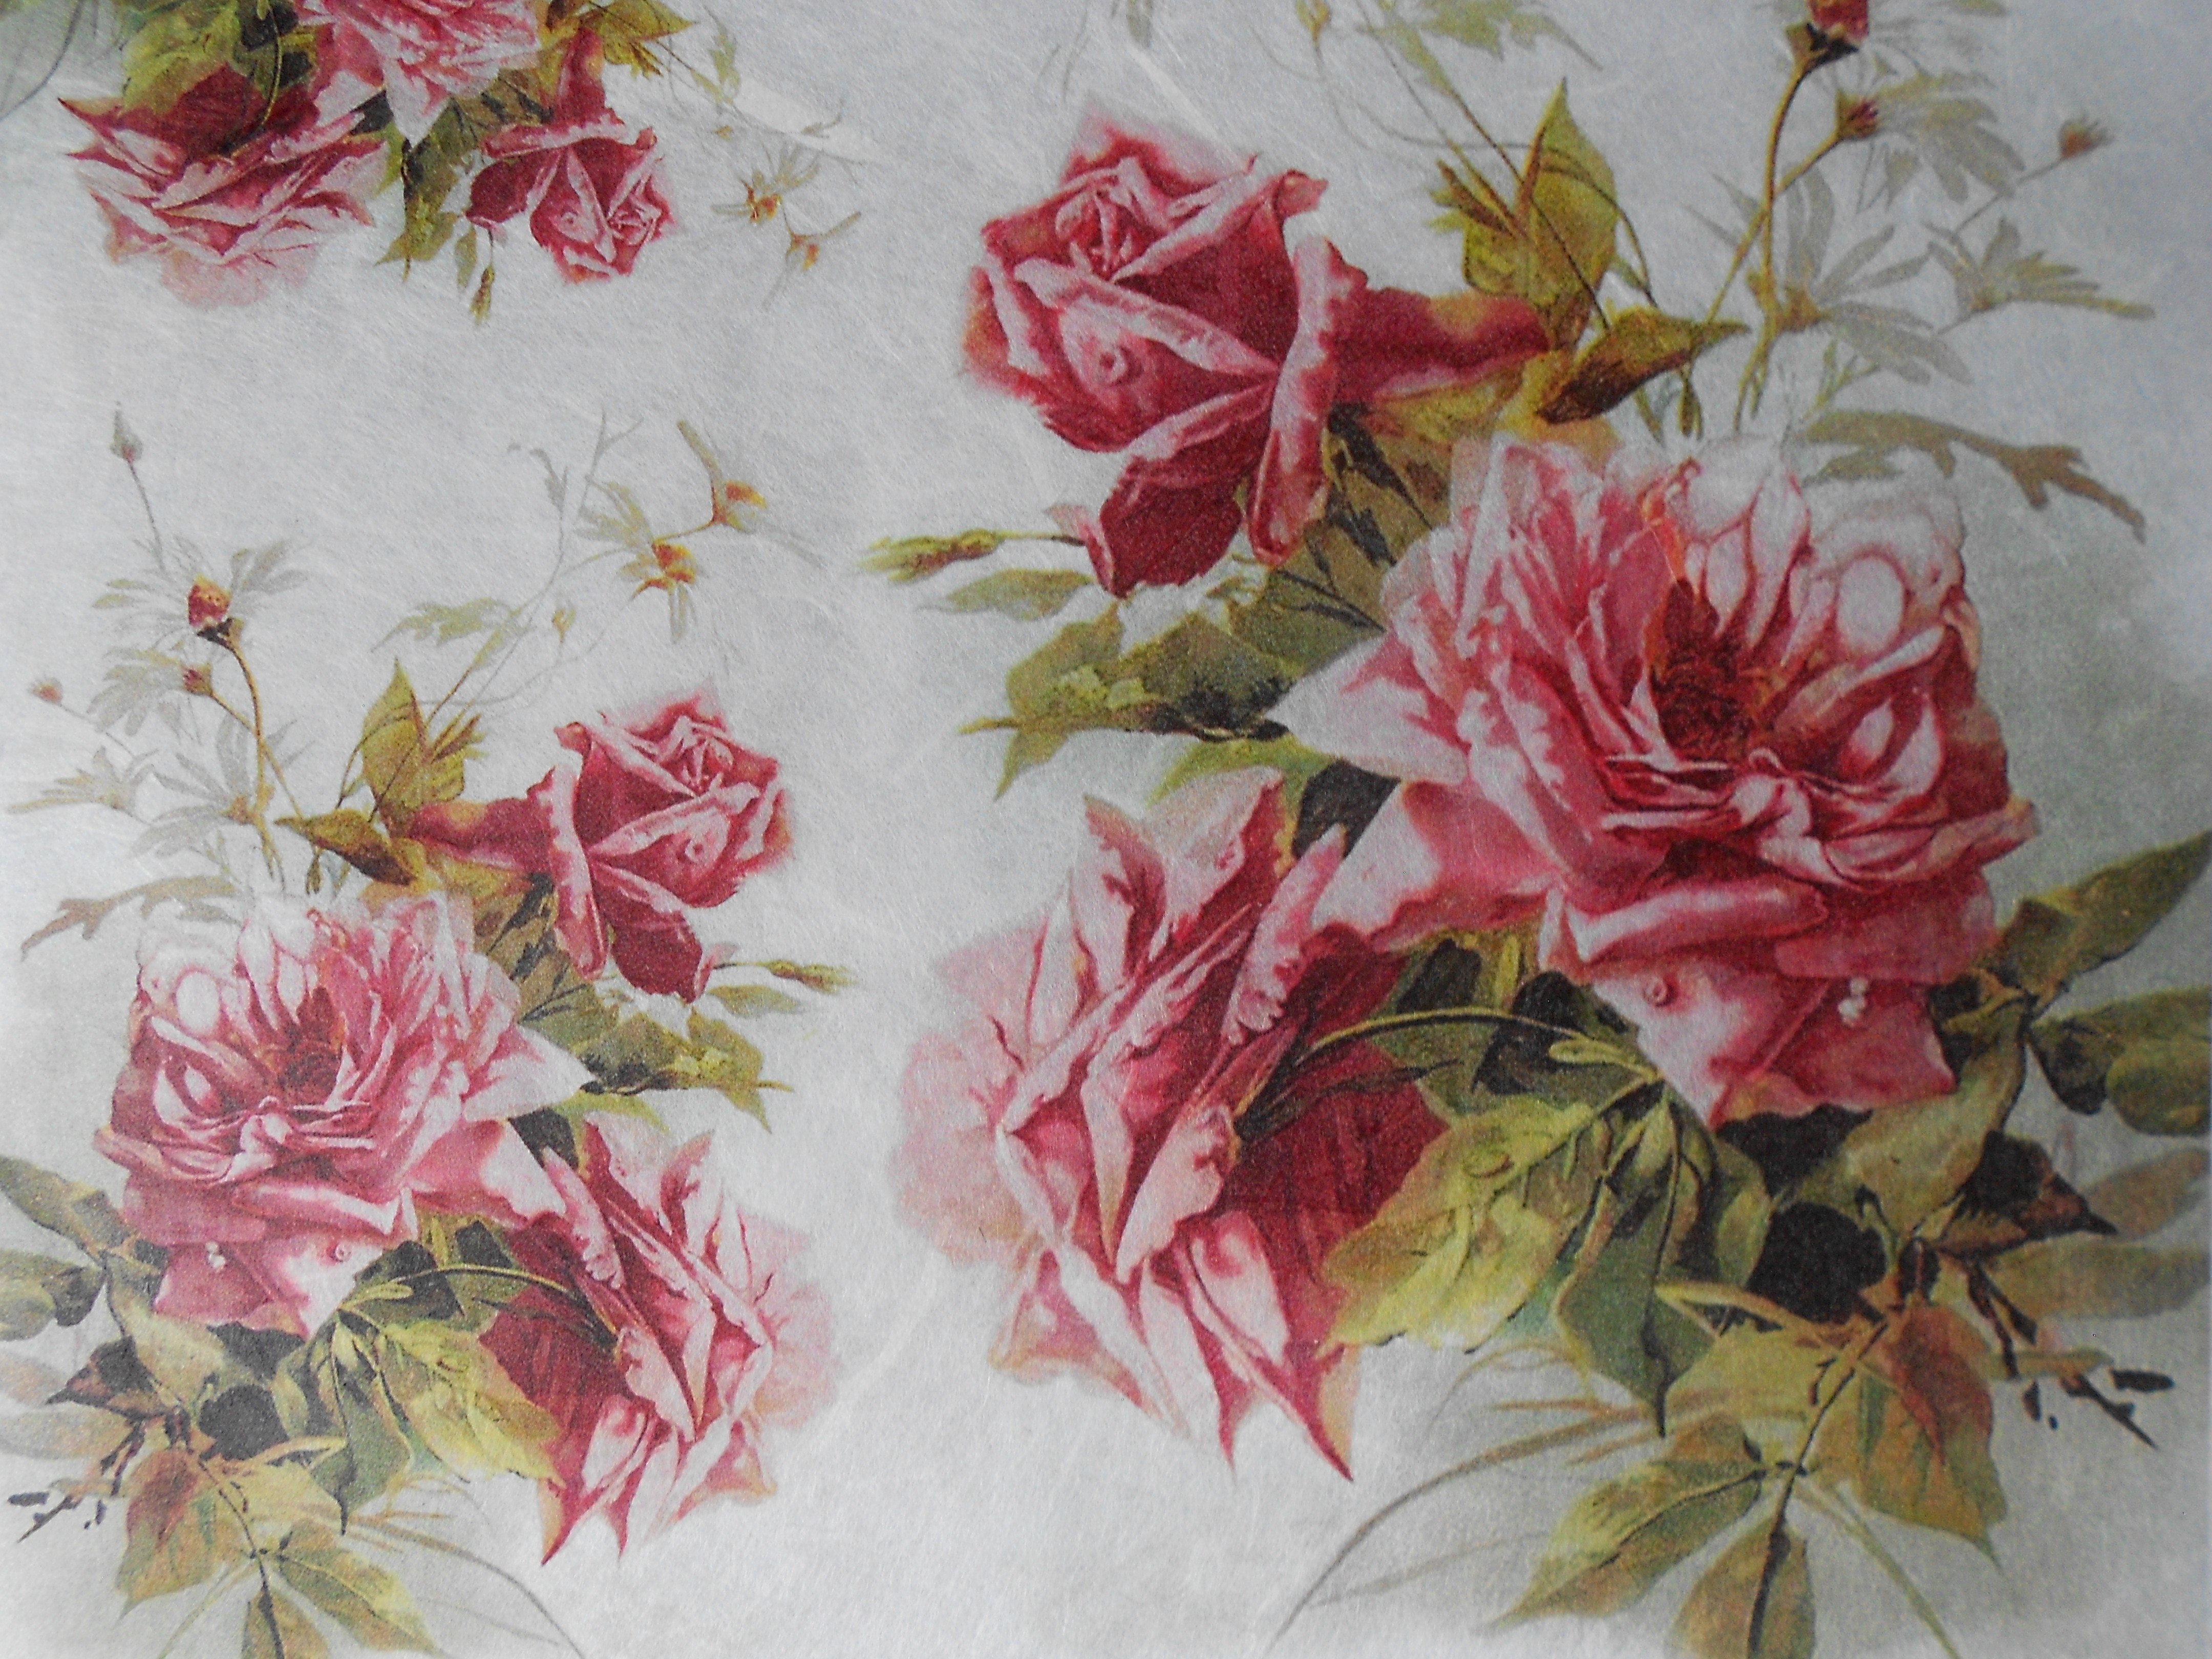 Pink Roses White Daisies Bouquet Decoupage Rice Paper